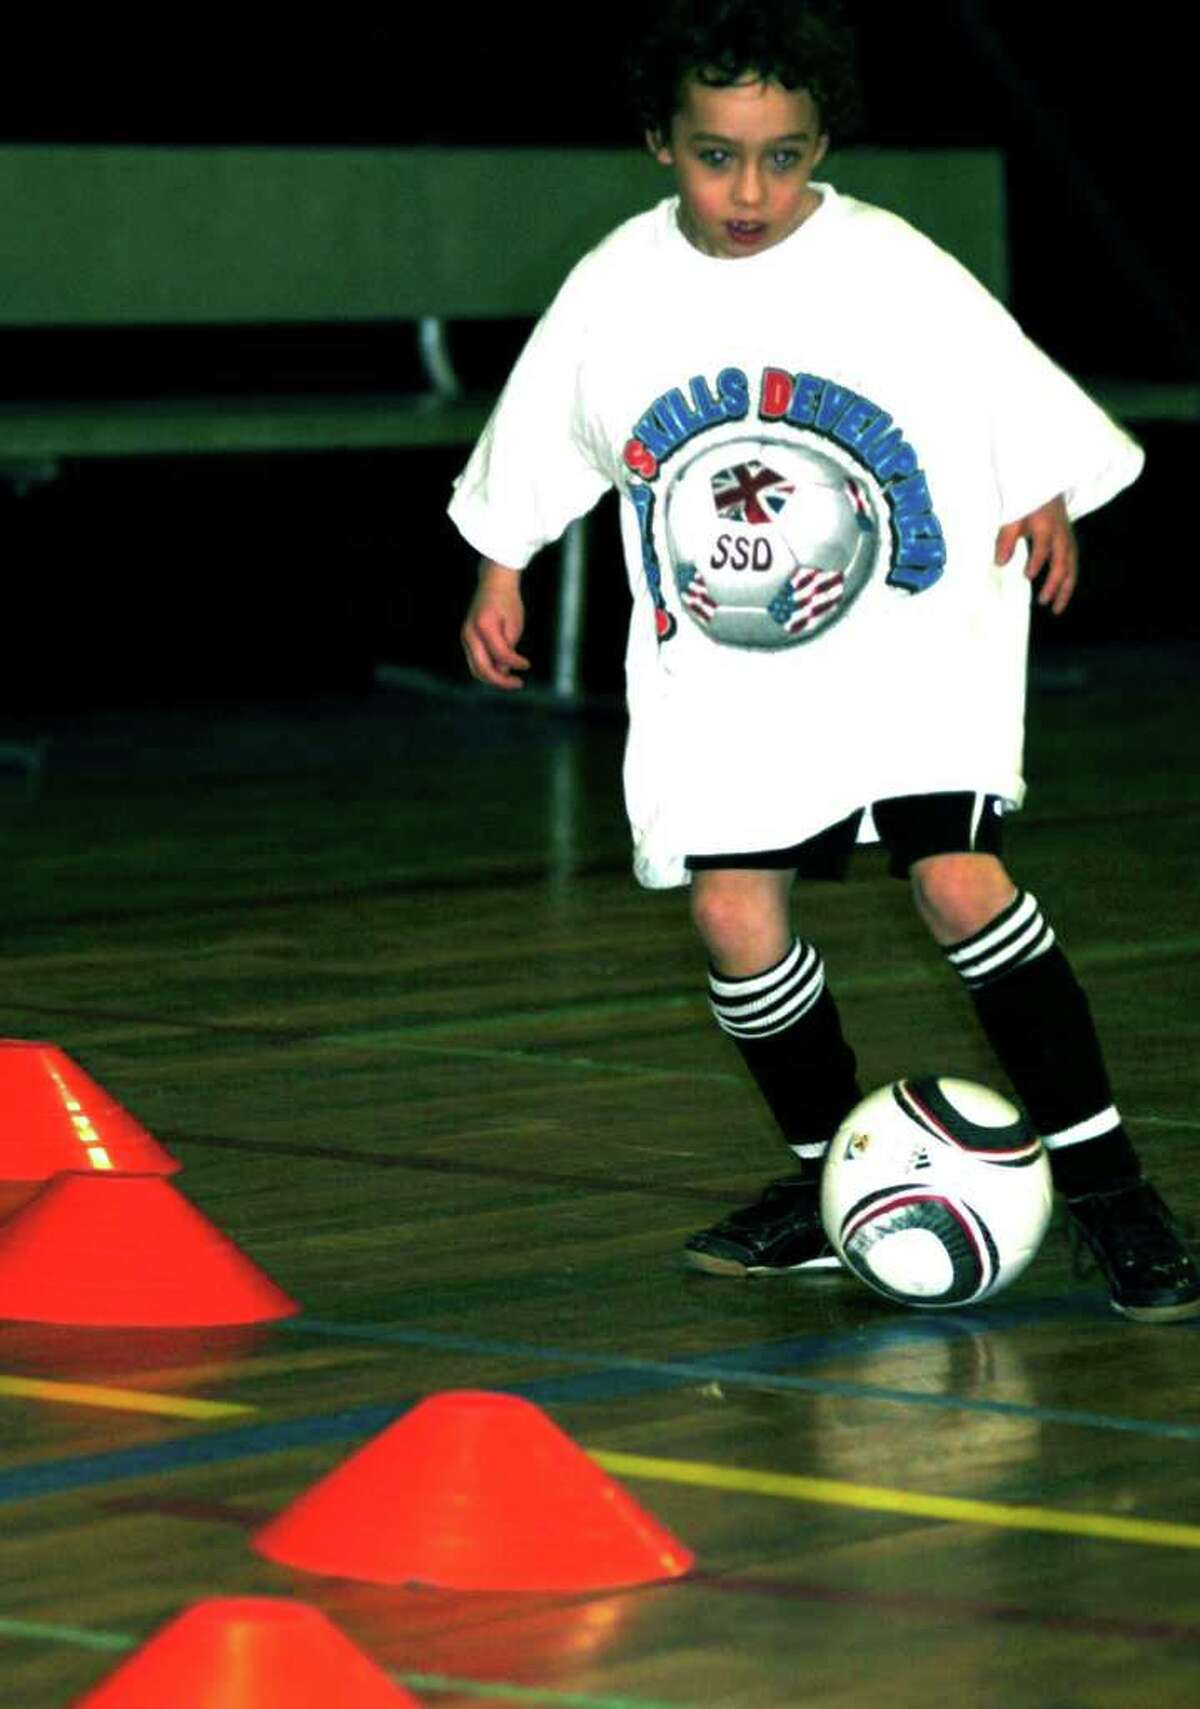 SPECTRUM/Devin Walsh demonstrates his foot skills at the Soccer Skills program, Feb. 25, 2011 at the Connecticut Sports Arena.